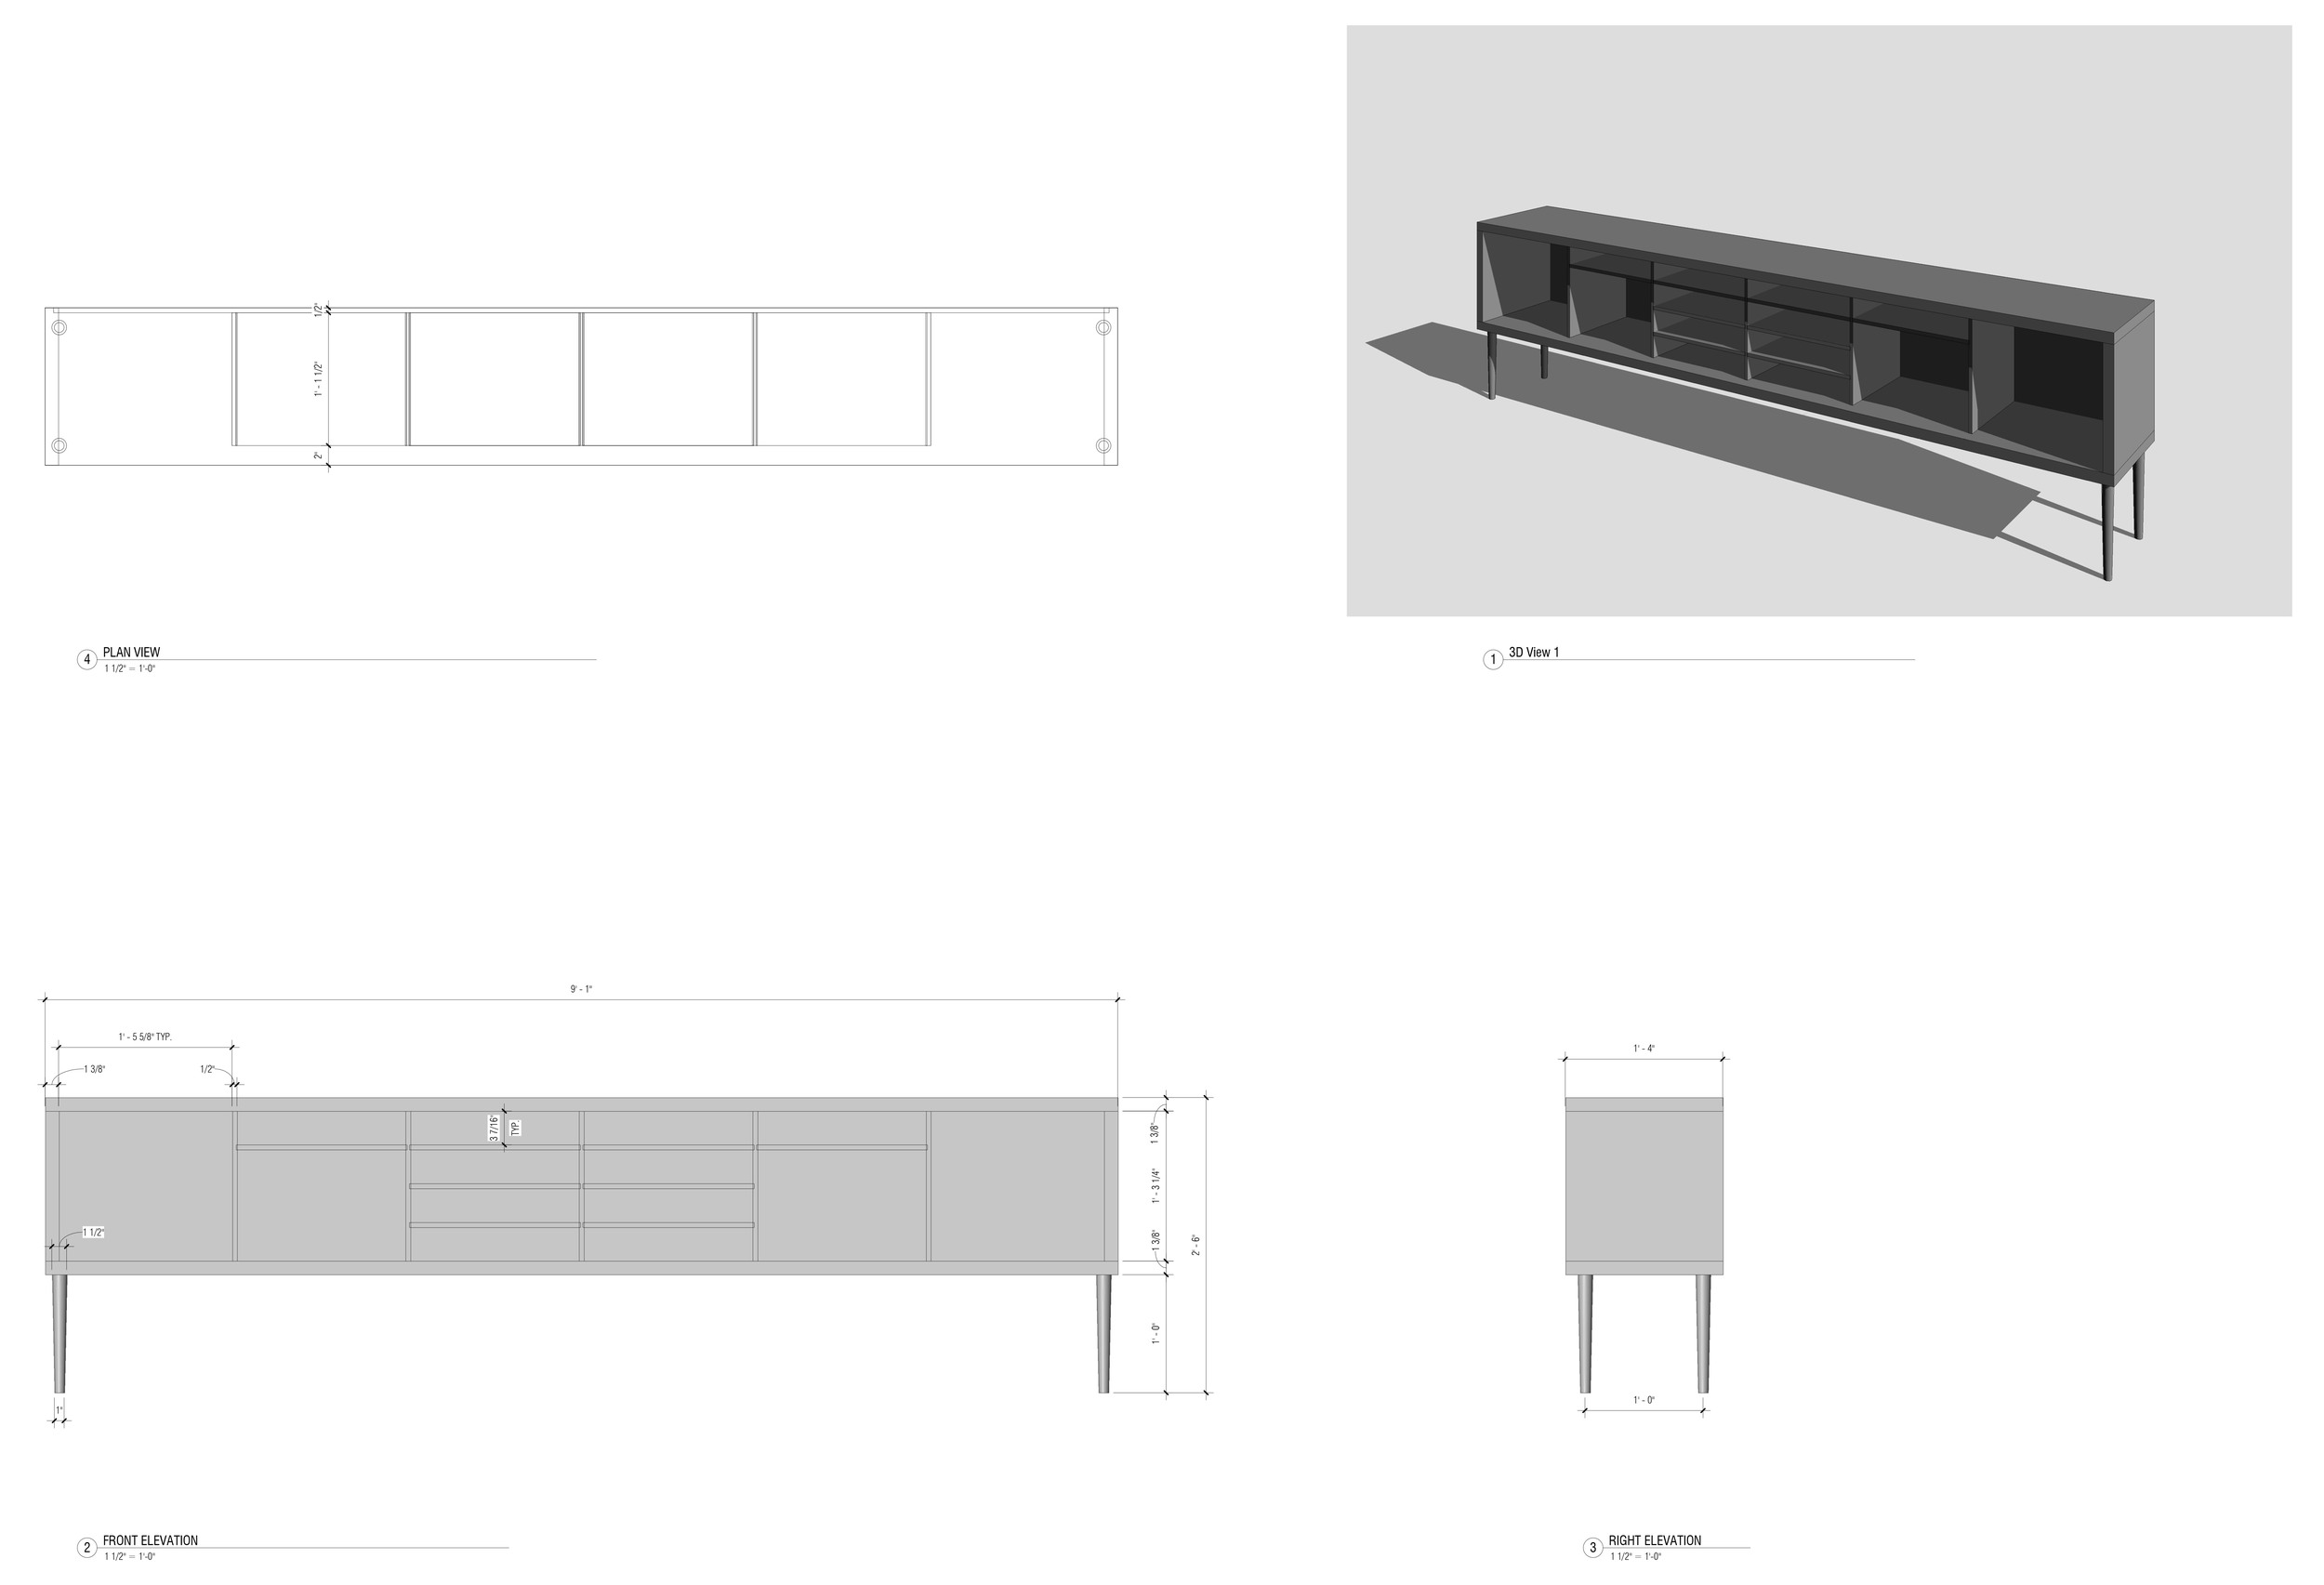 Credenza drawings.